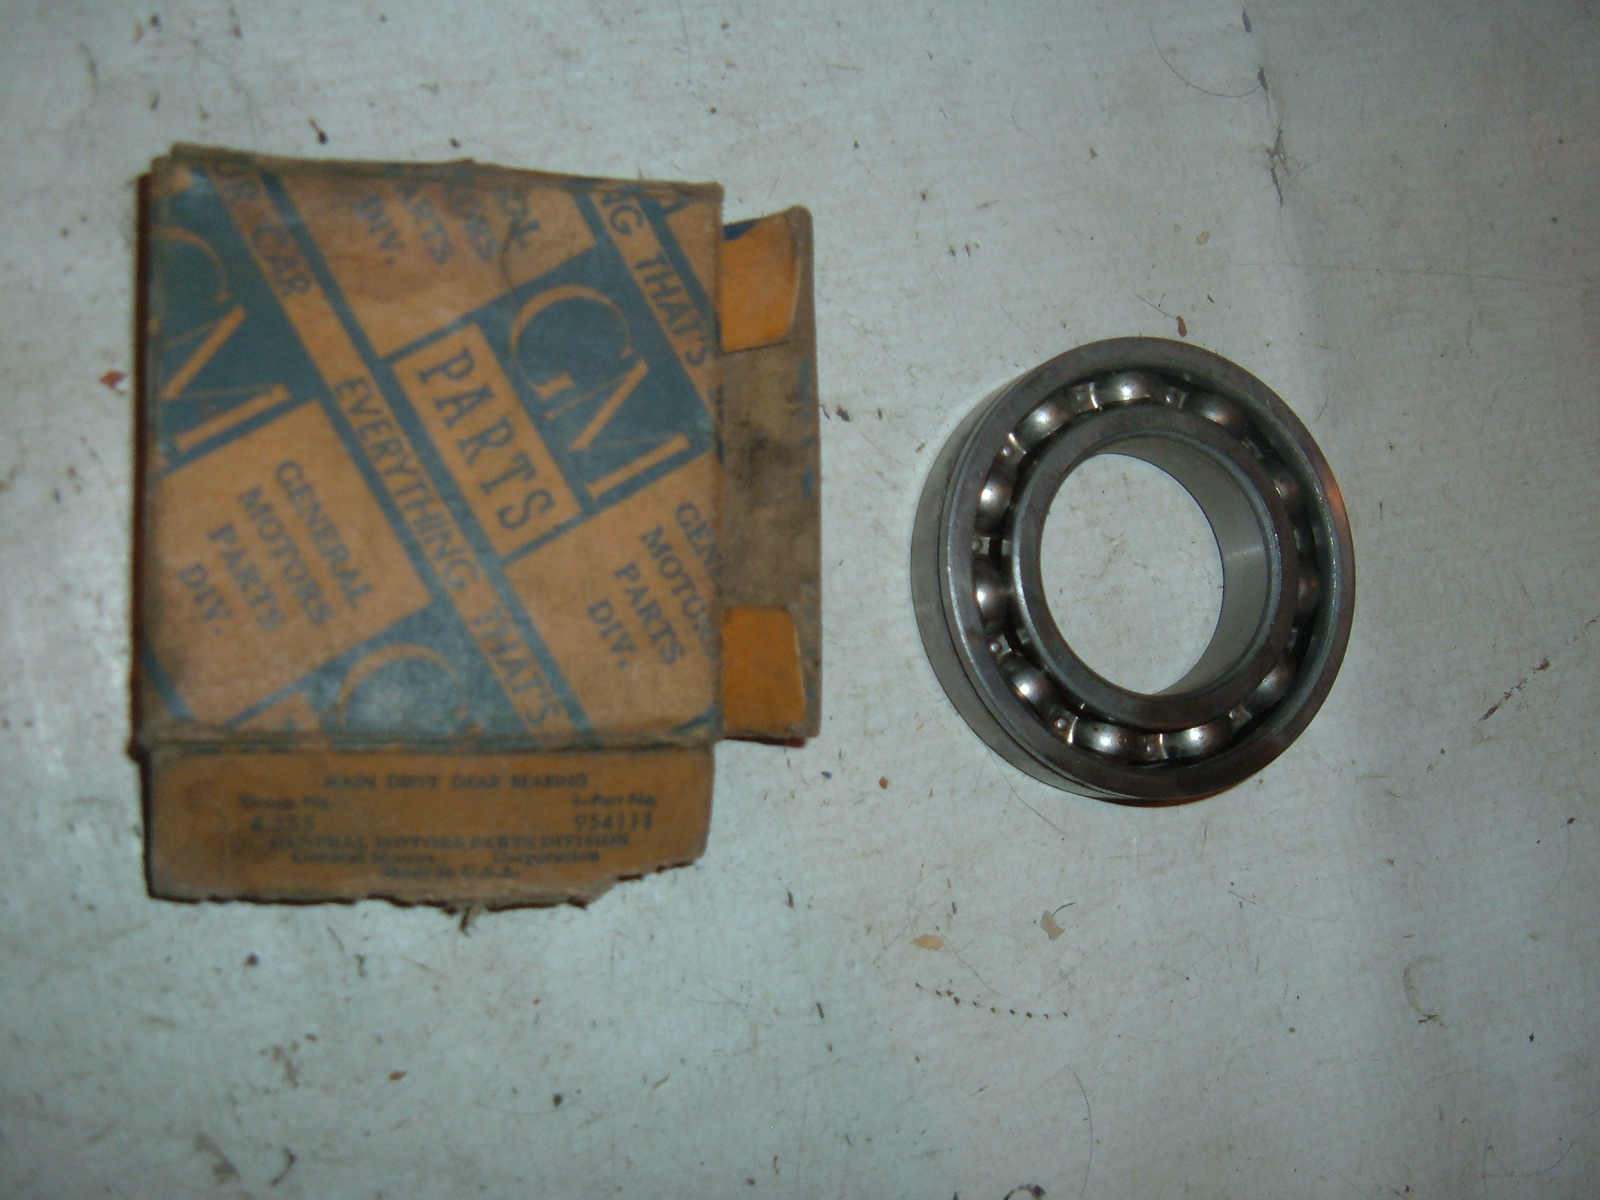 1933 34 35 36 chevrolet front main shaft transmission bearing nos gm # 954111 (z 954111)